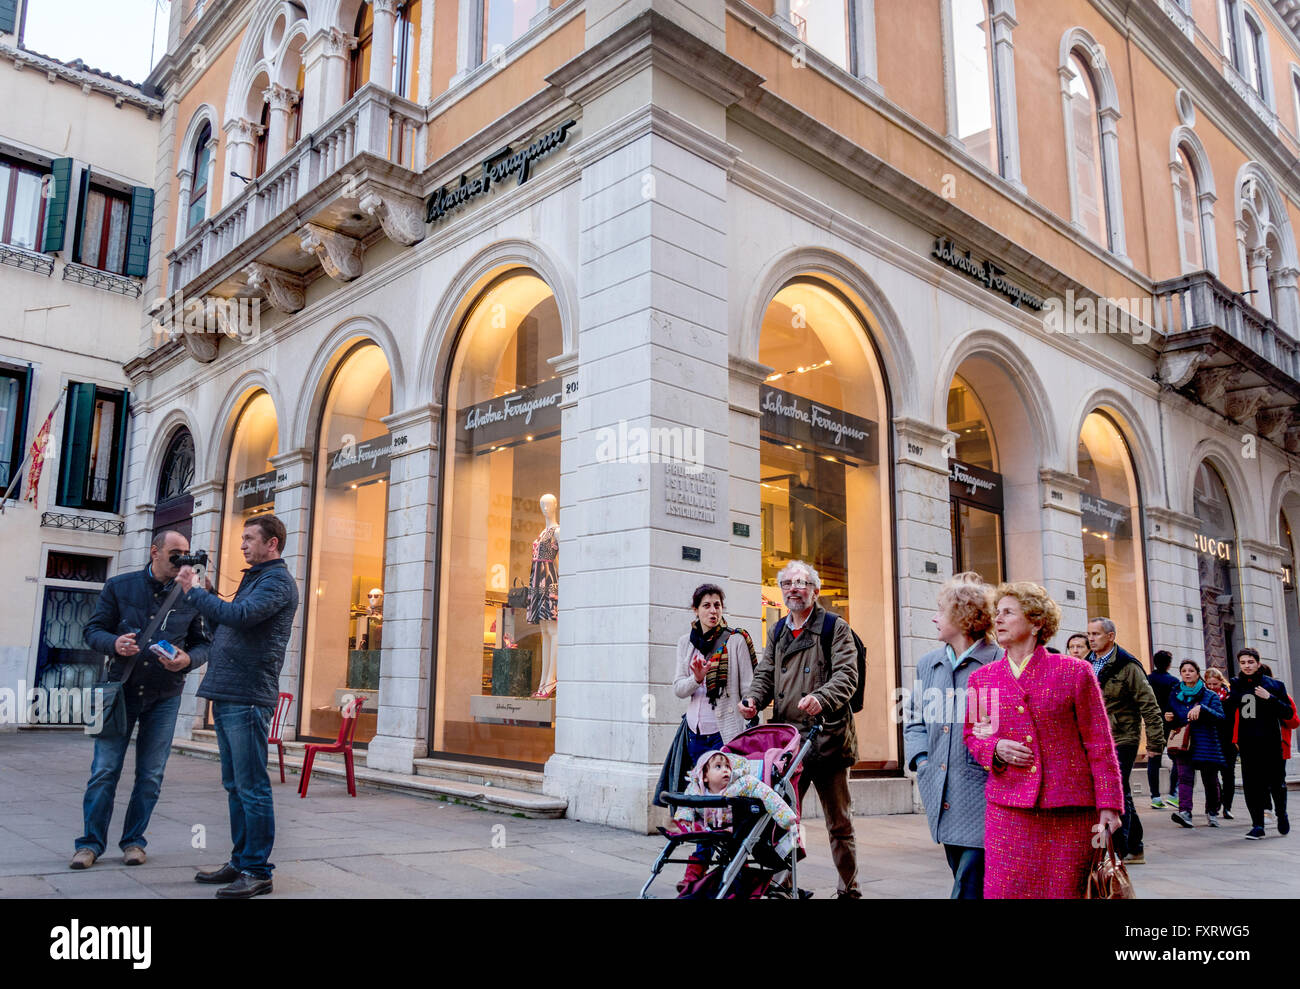 Venice Italian people locals and tourists shopping. Man pushing baby stroller in front of Ferragamo and Gucci fashion - Stock Image